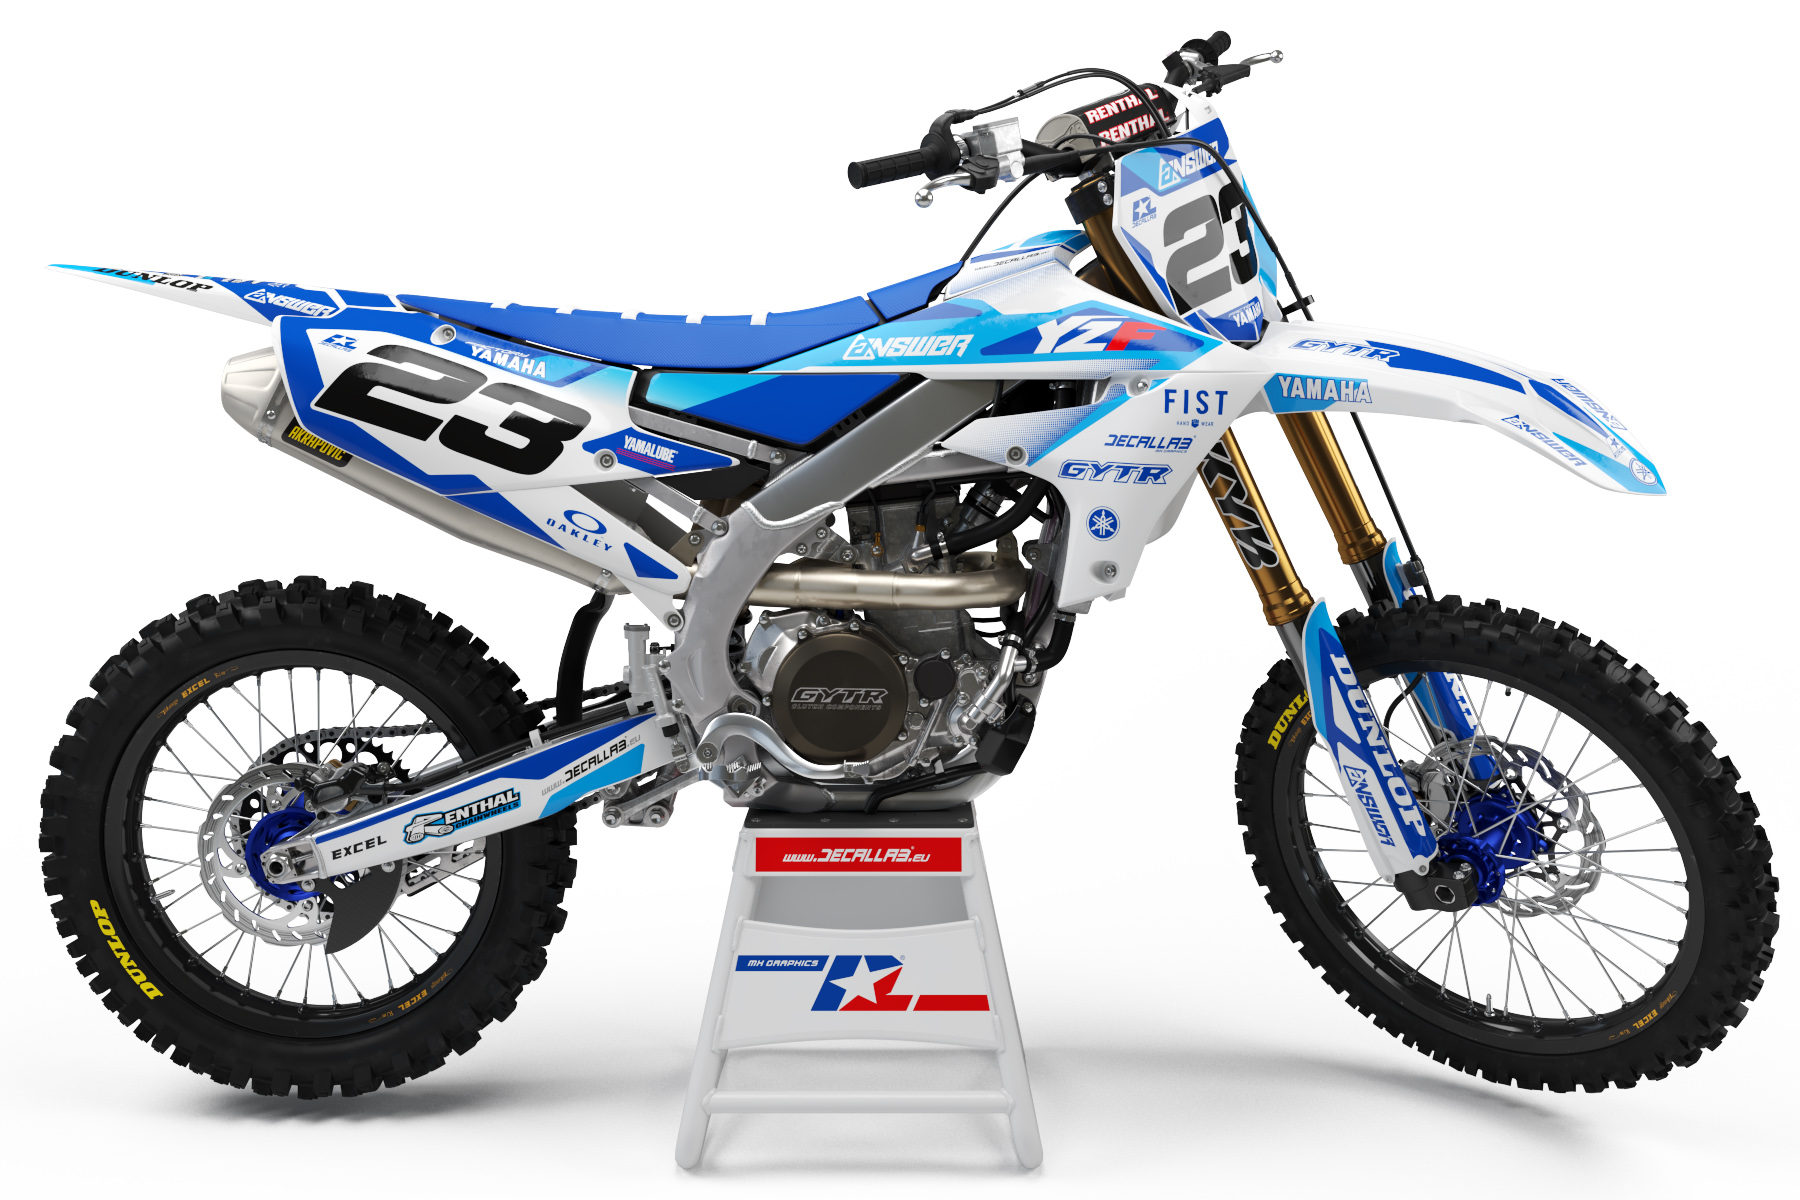 decallab yamaha factory one time answer decal dirt bike graphics kit yz yzf gytr fist 125 250 450 2019